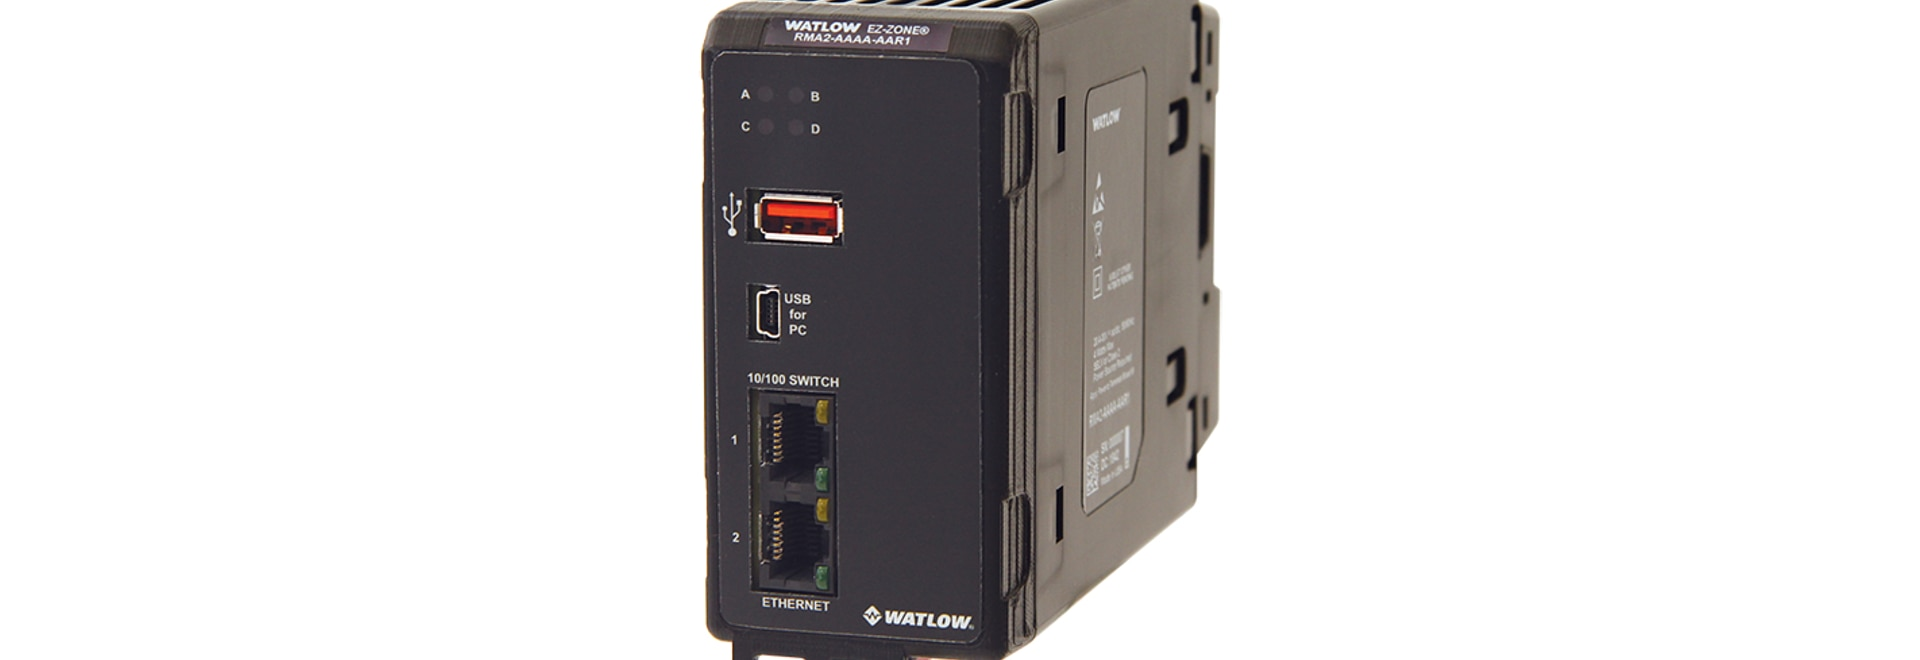 Watlow introduces RMA PLUS remote access module